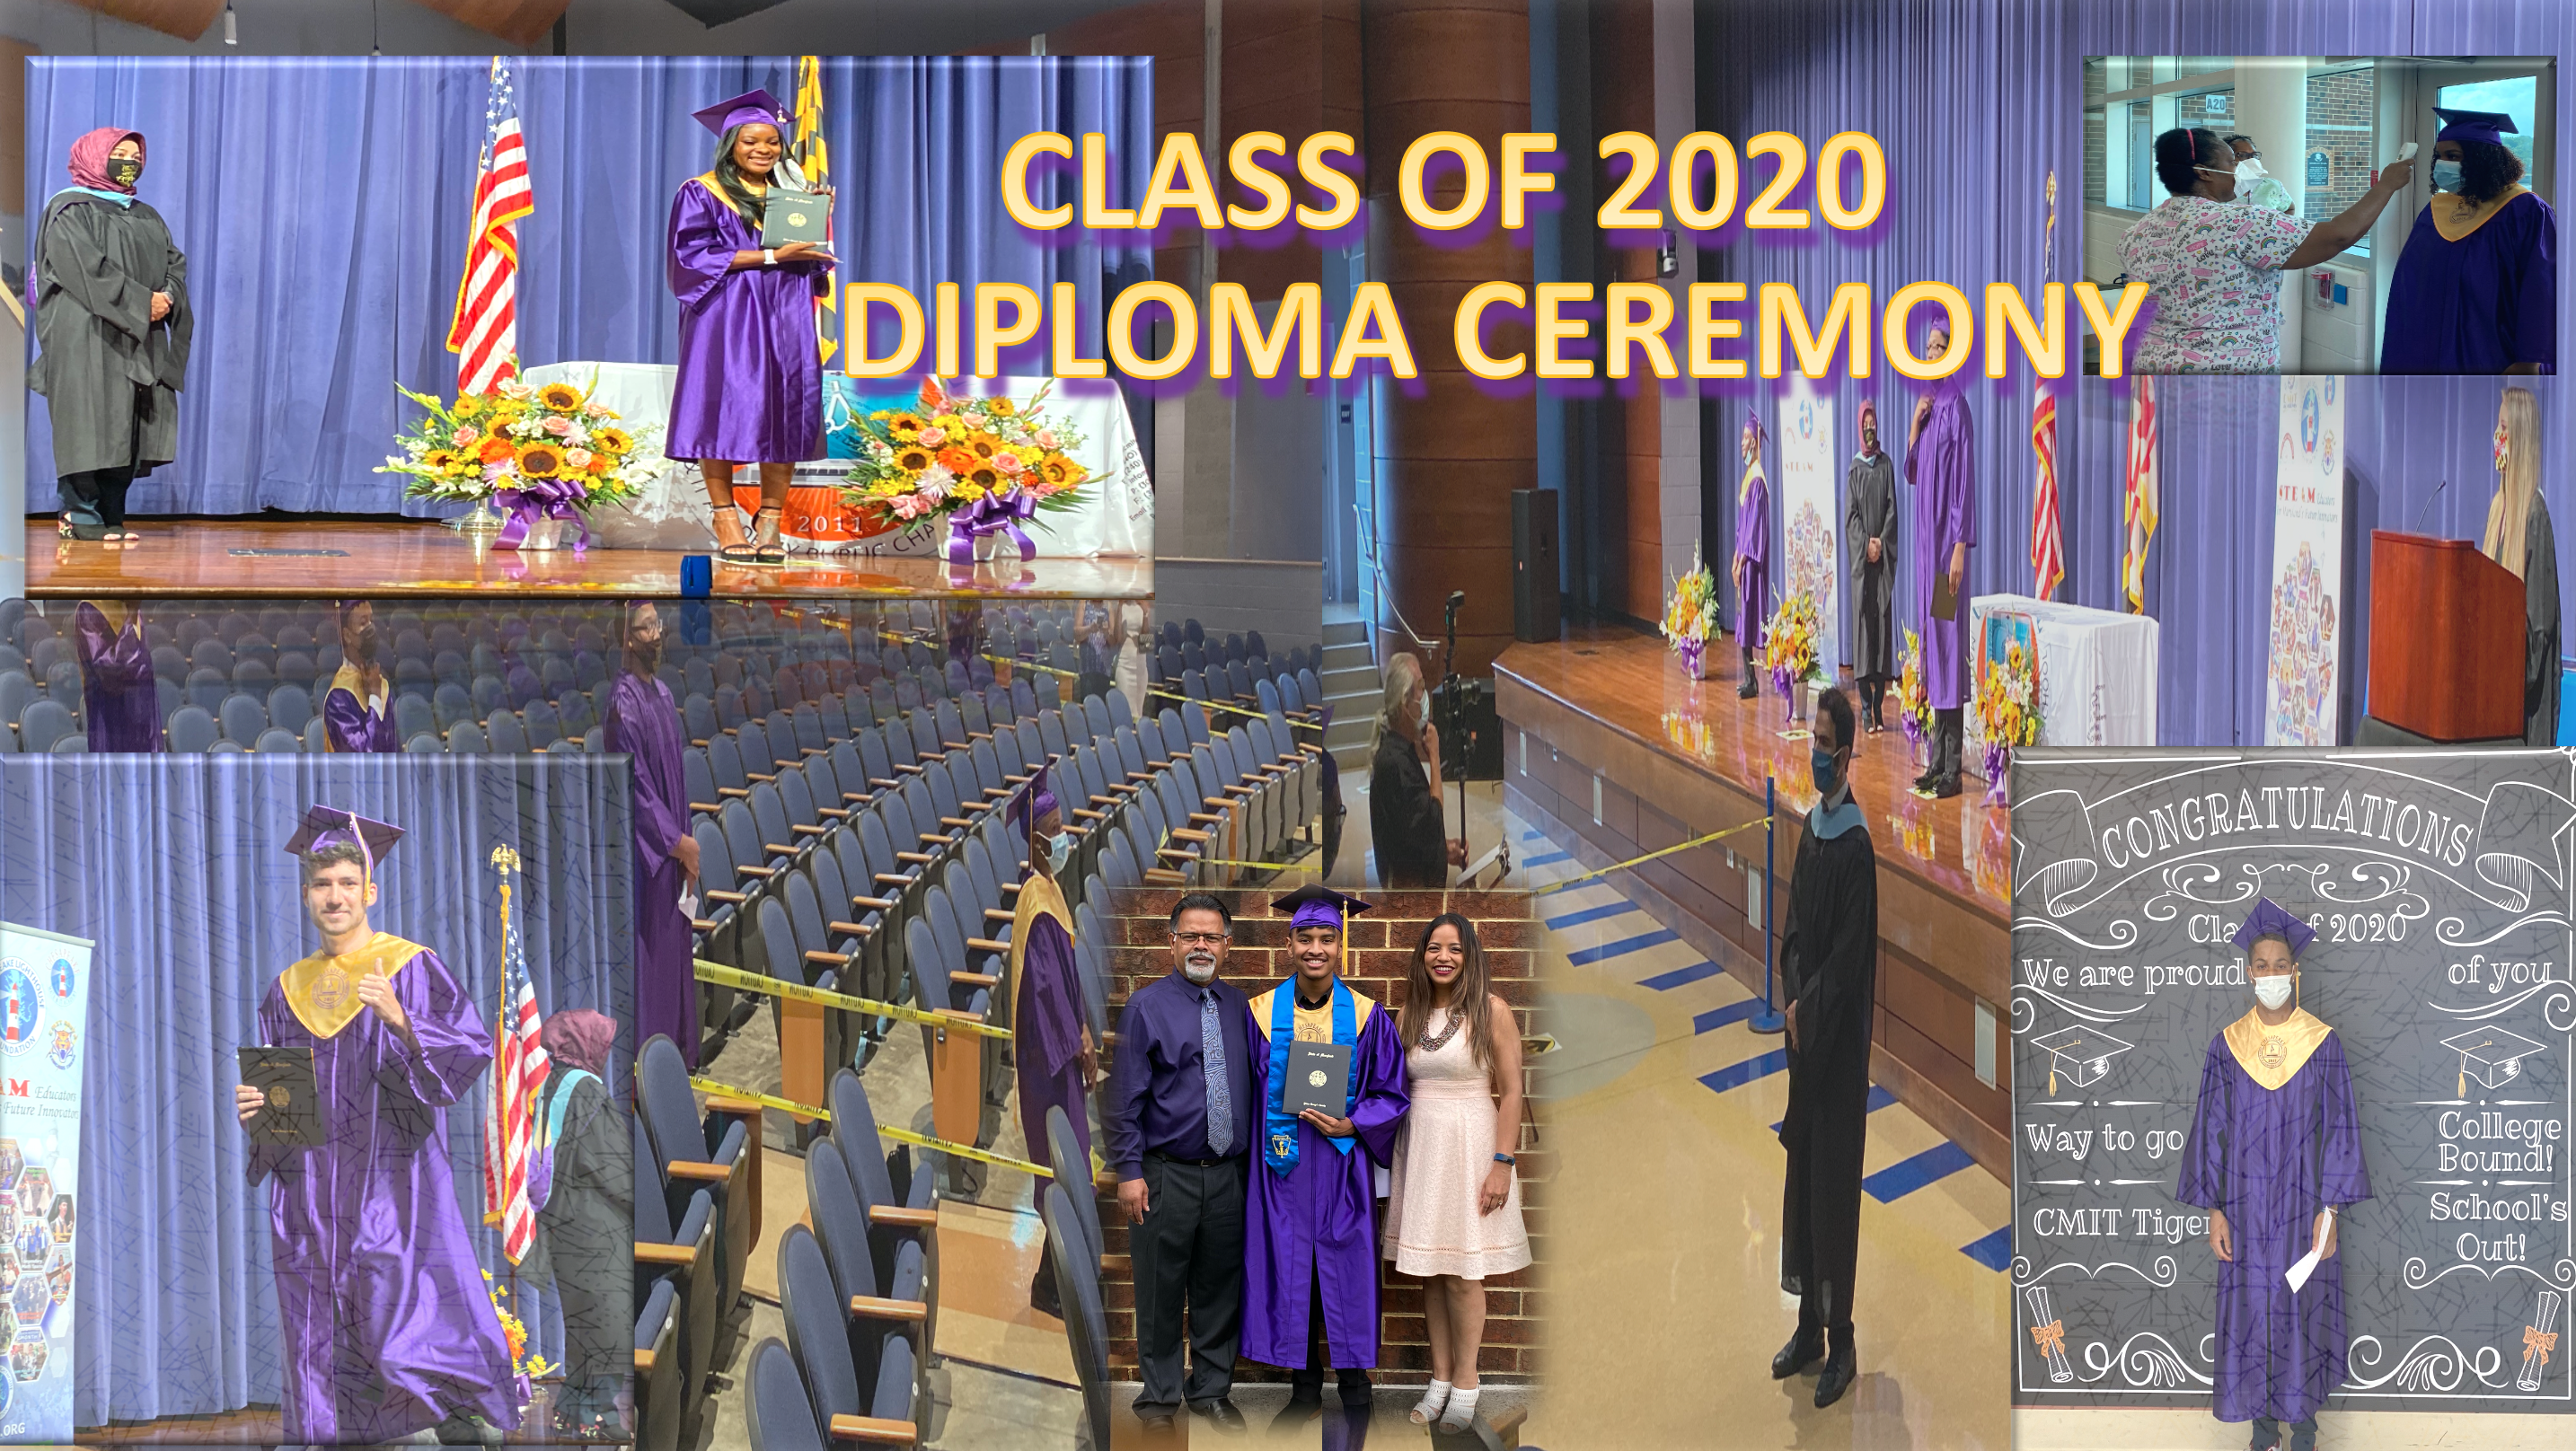 CLASS OF 2020 DIPLOMA CEREMONY